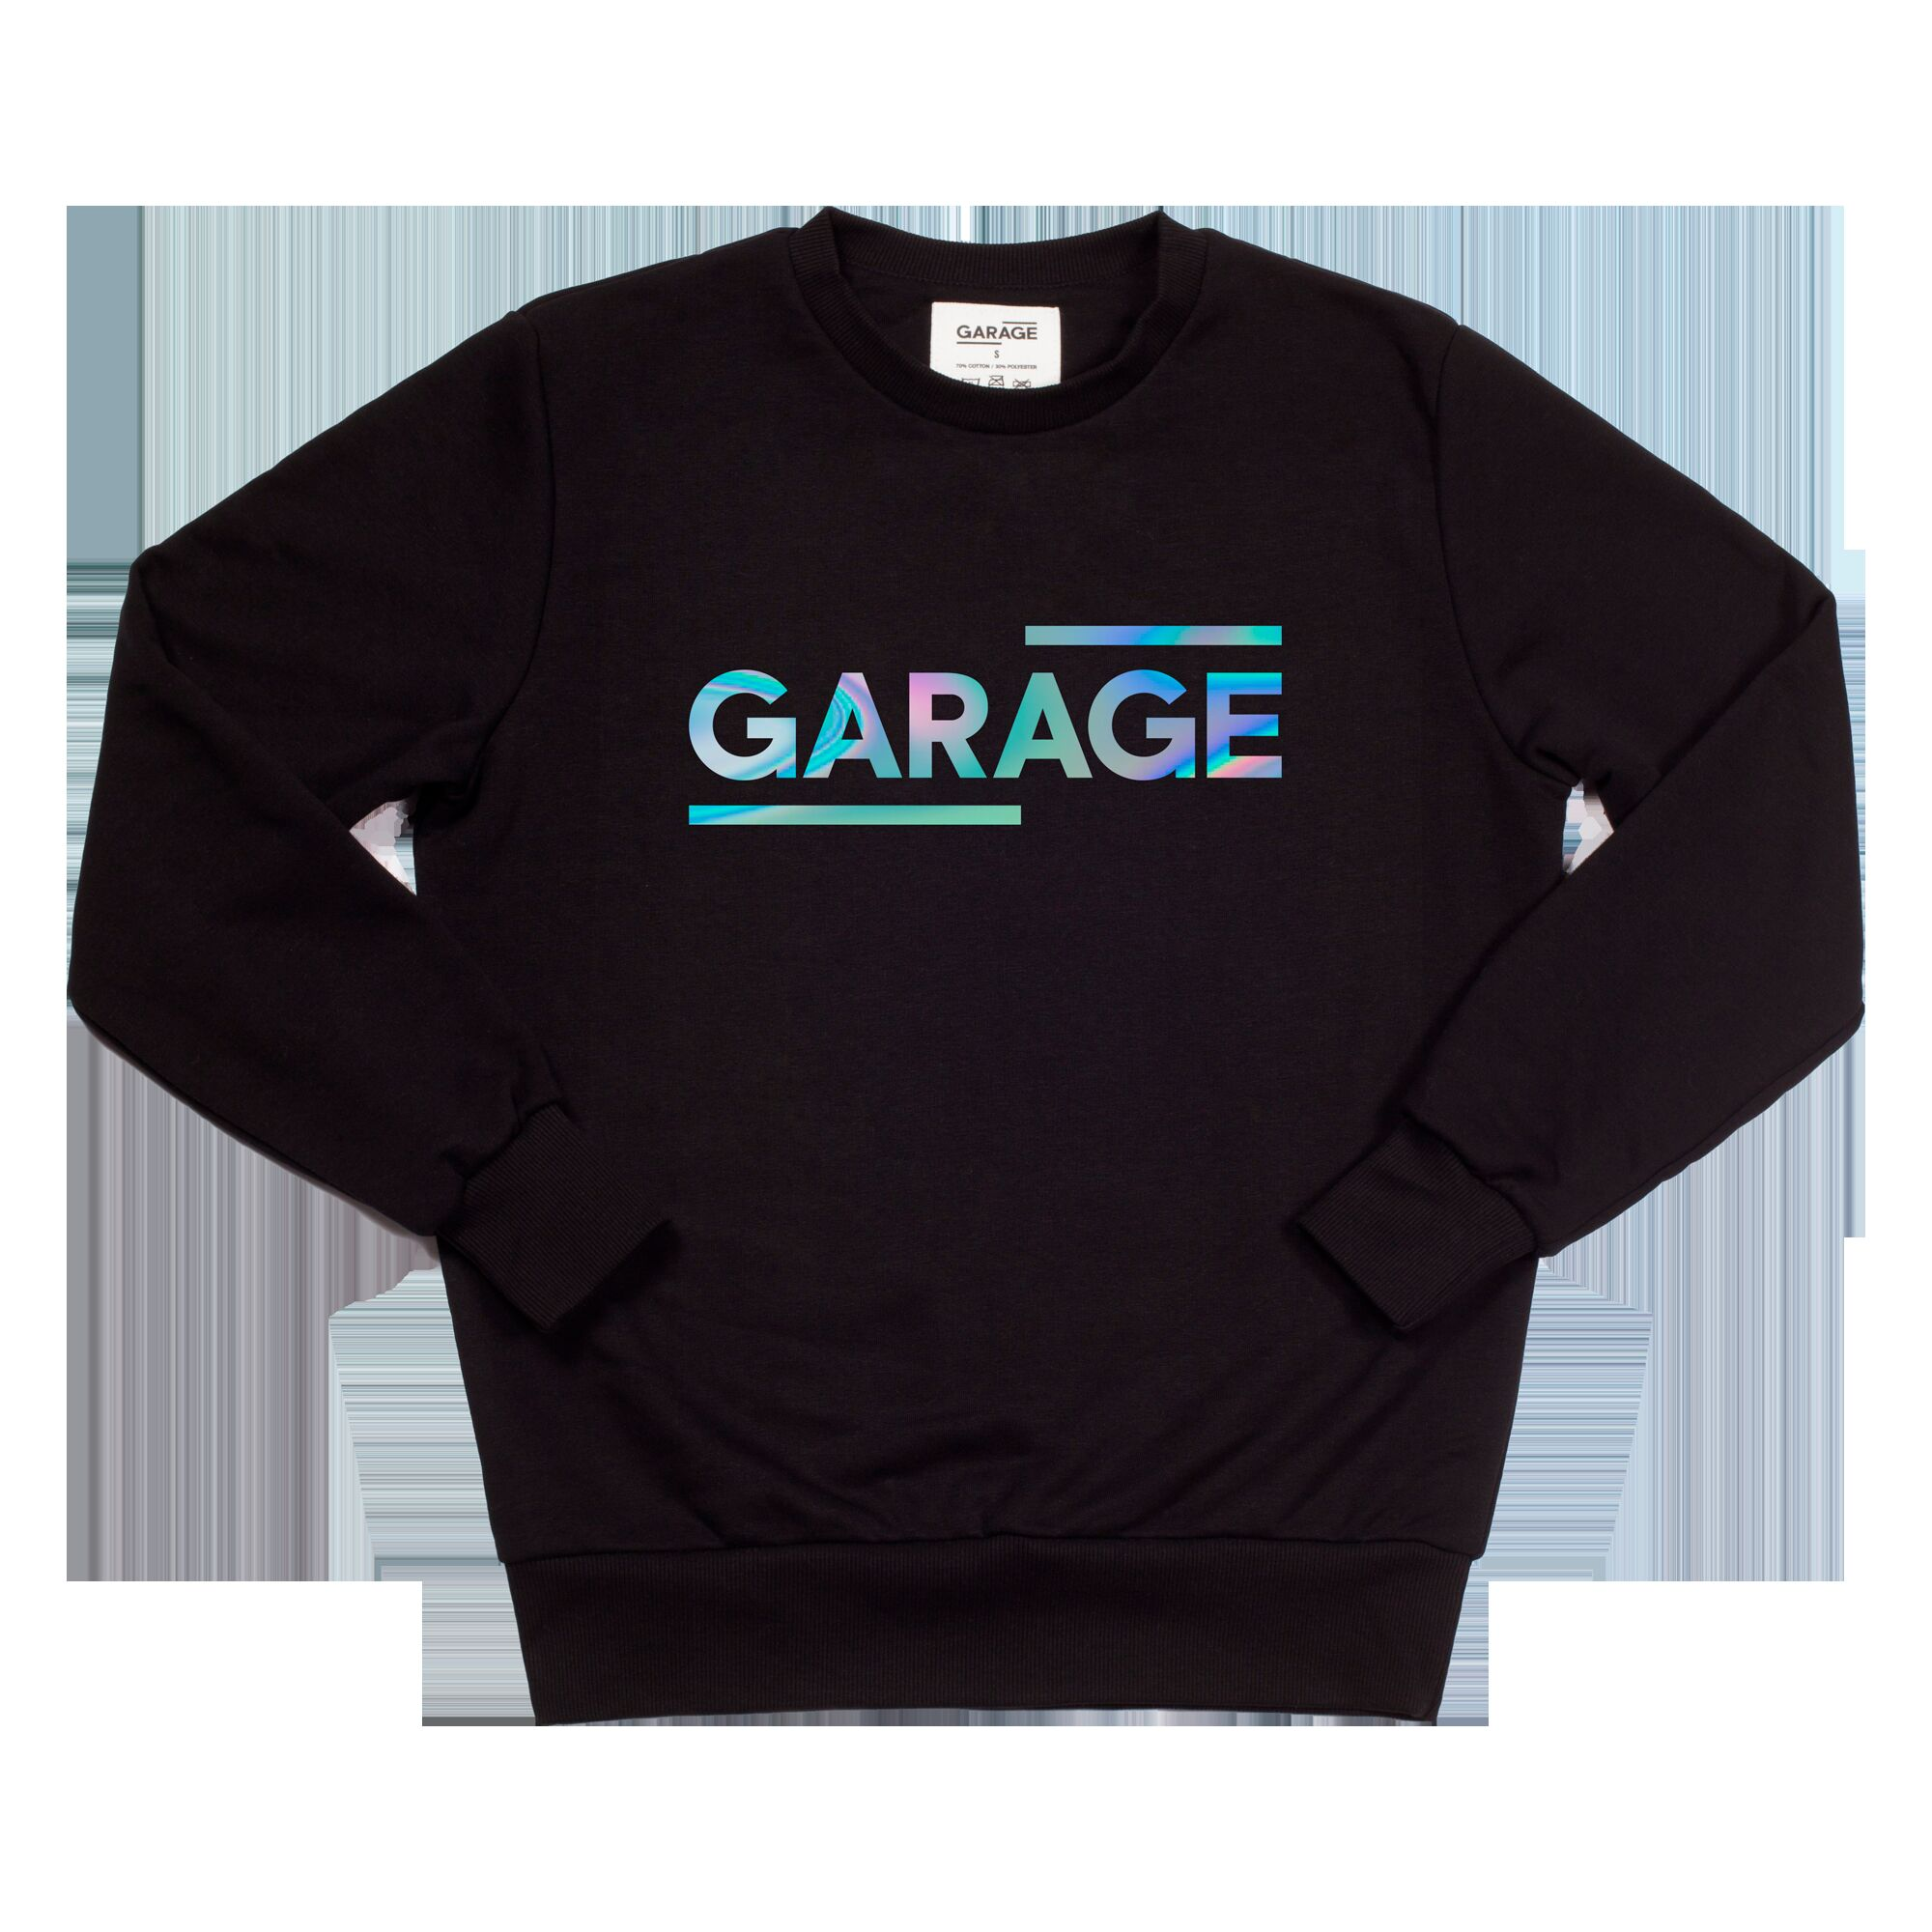 GARAGE sweatshirt Logo color: spectrum